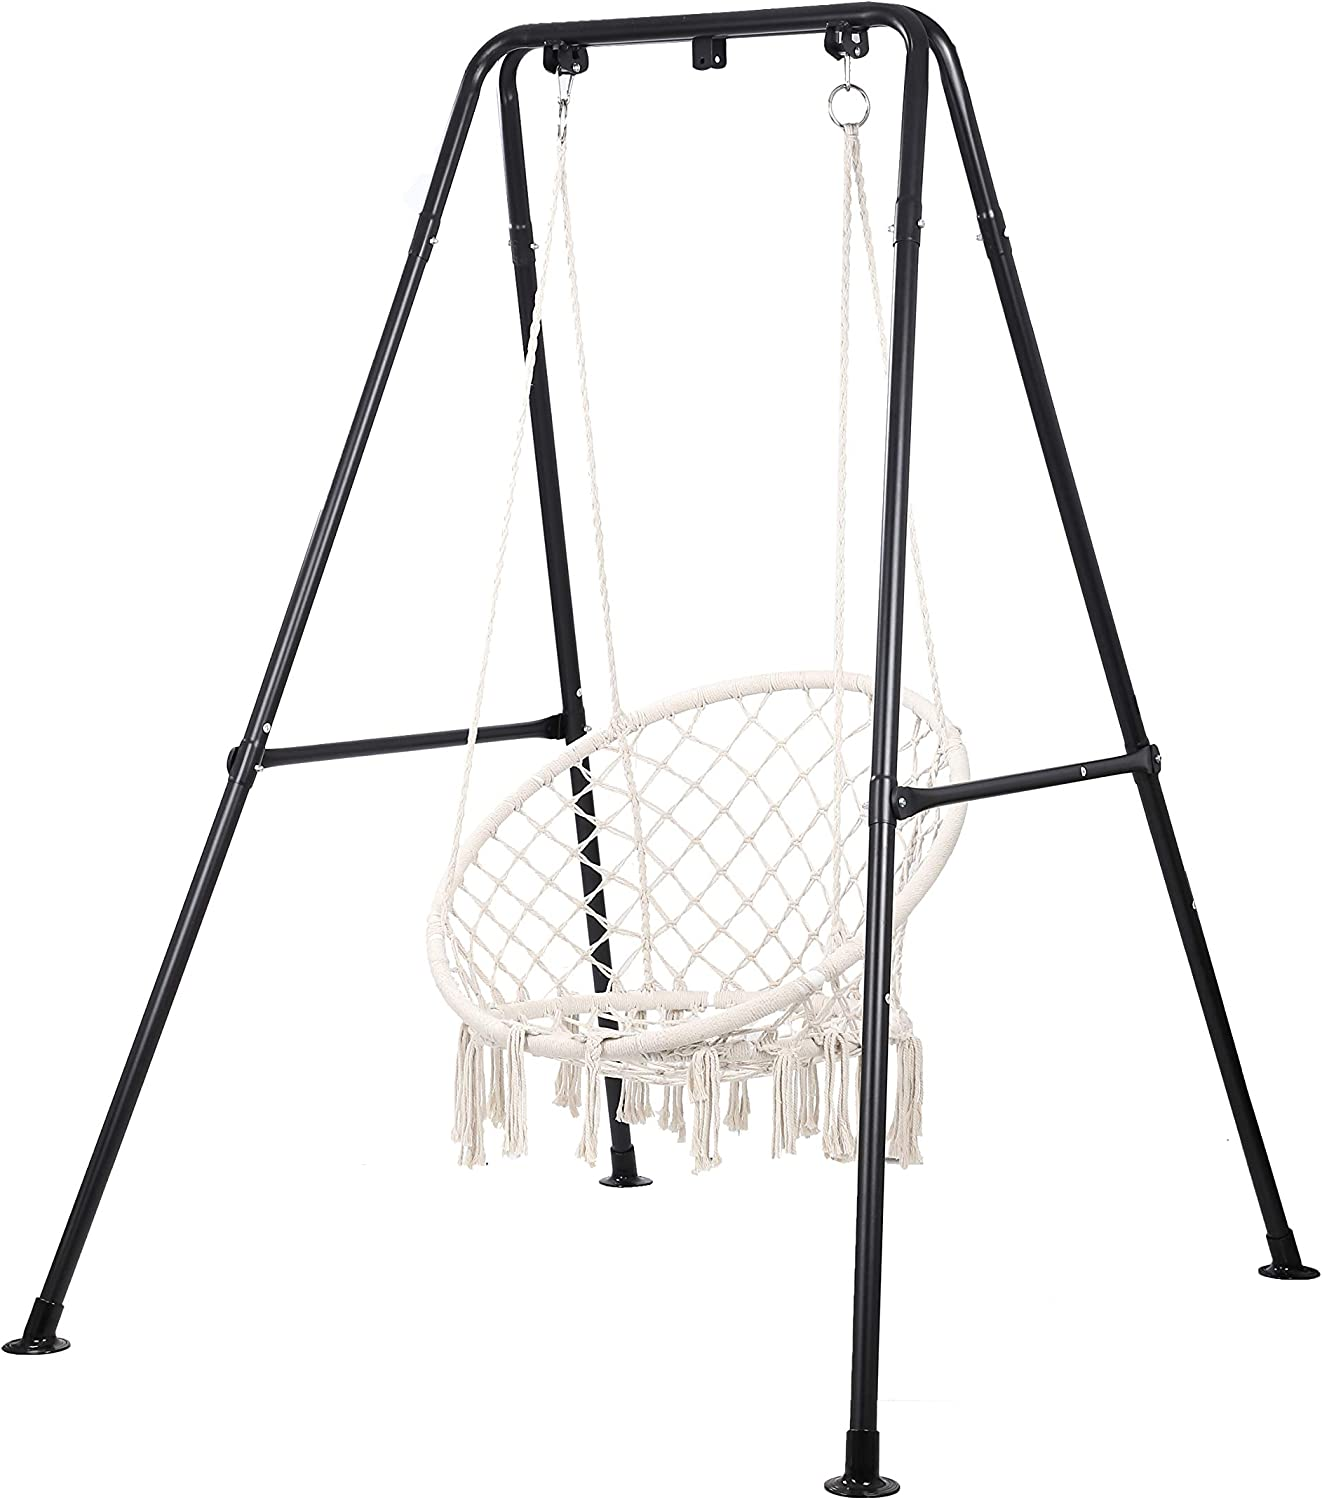 Taleco Gear Hammock Chair Stand, Heavy Duty Steel Hammock with Stand,Hanging Hammock for Outdoor and Indoor, Swing Chair for Adults with Two Ways, Portable Hanging Chair with Stand Black